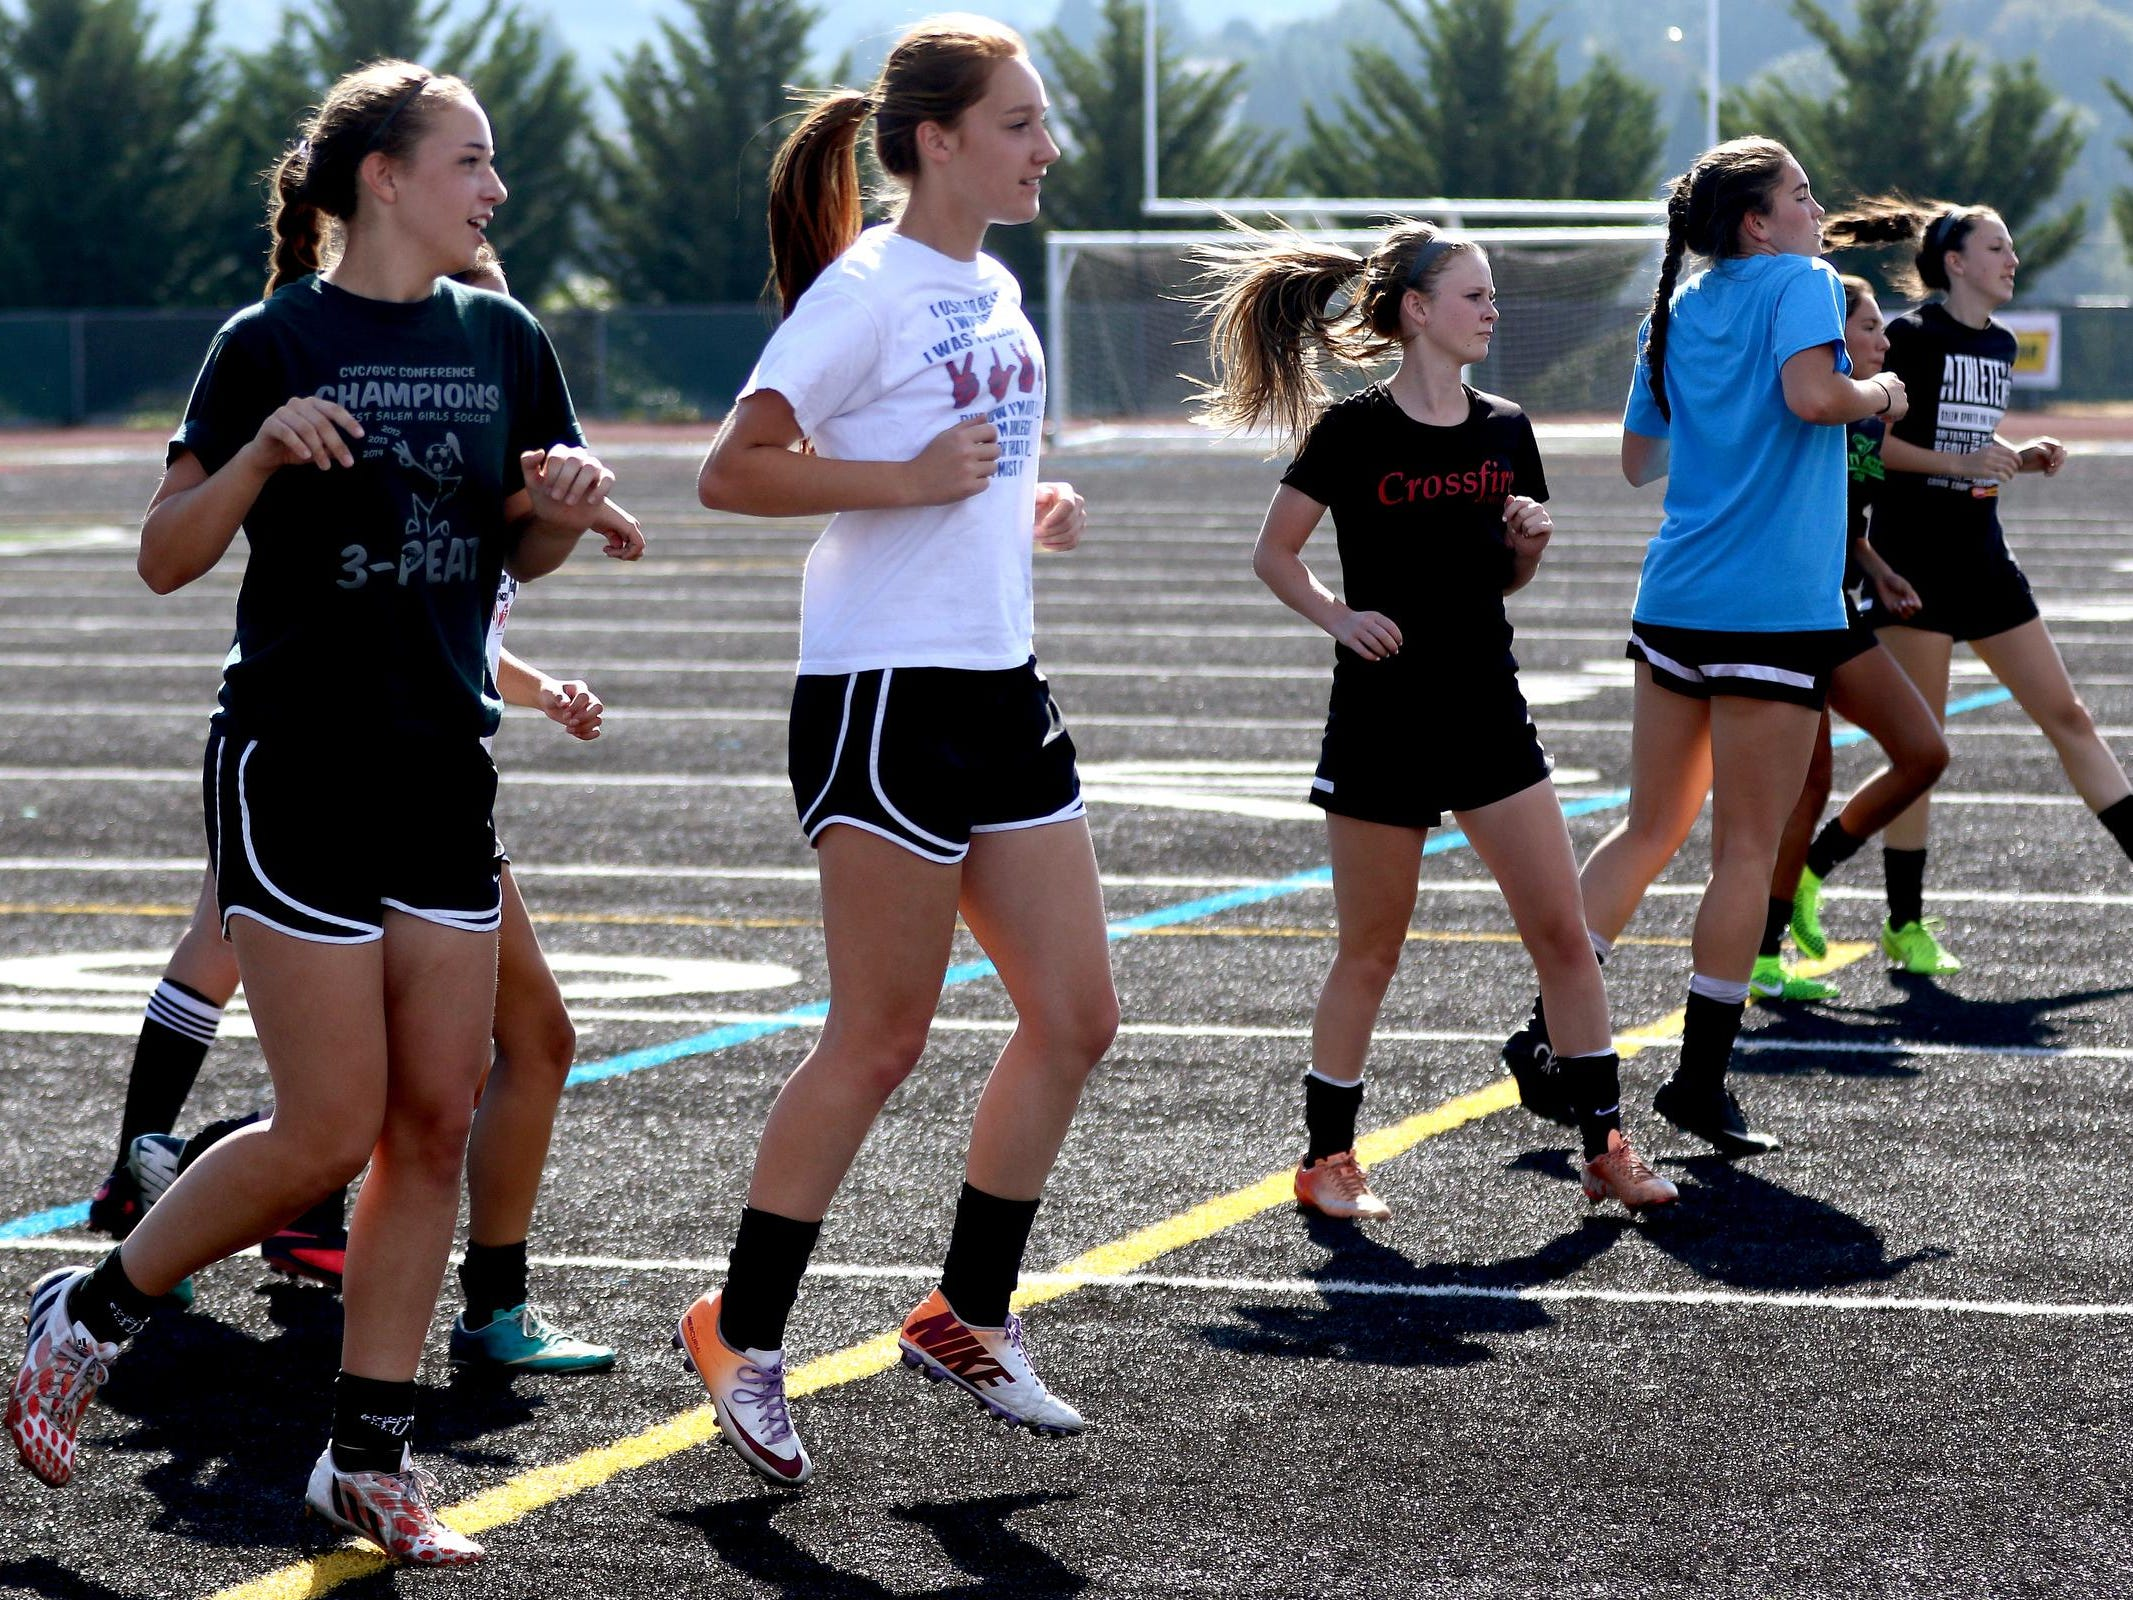 Players warm up during girl's soccer practice at West Salem High School on Thursday, Aug. 27, 2015.